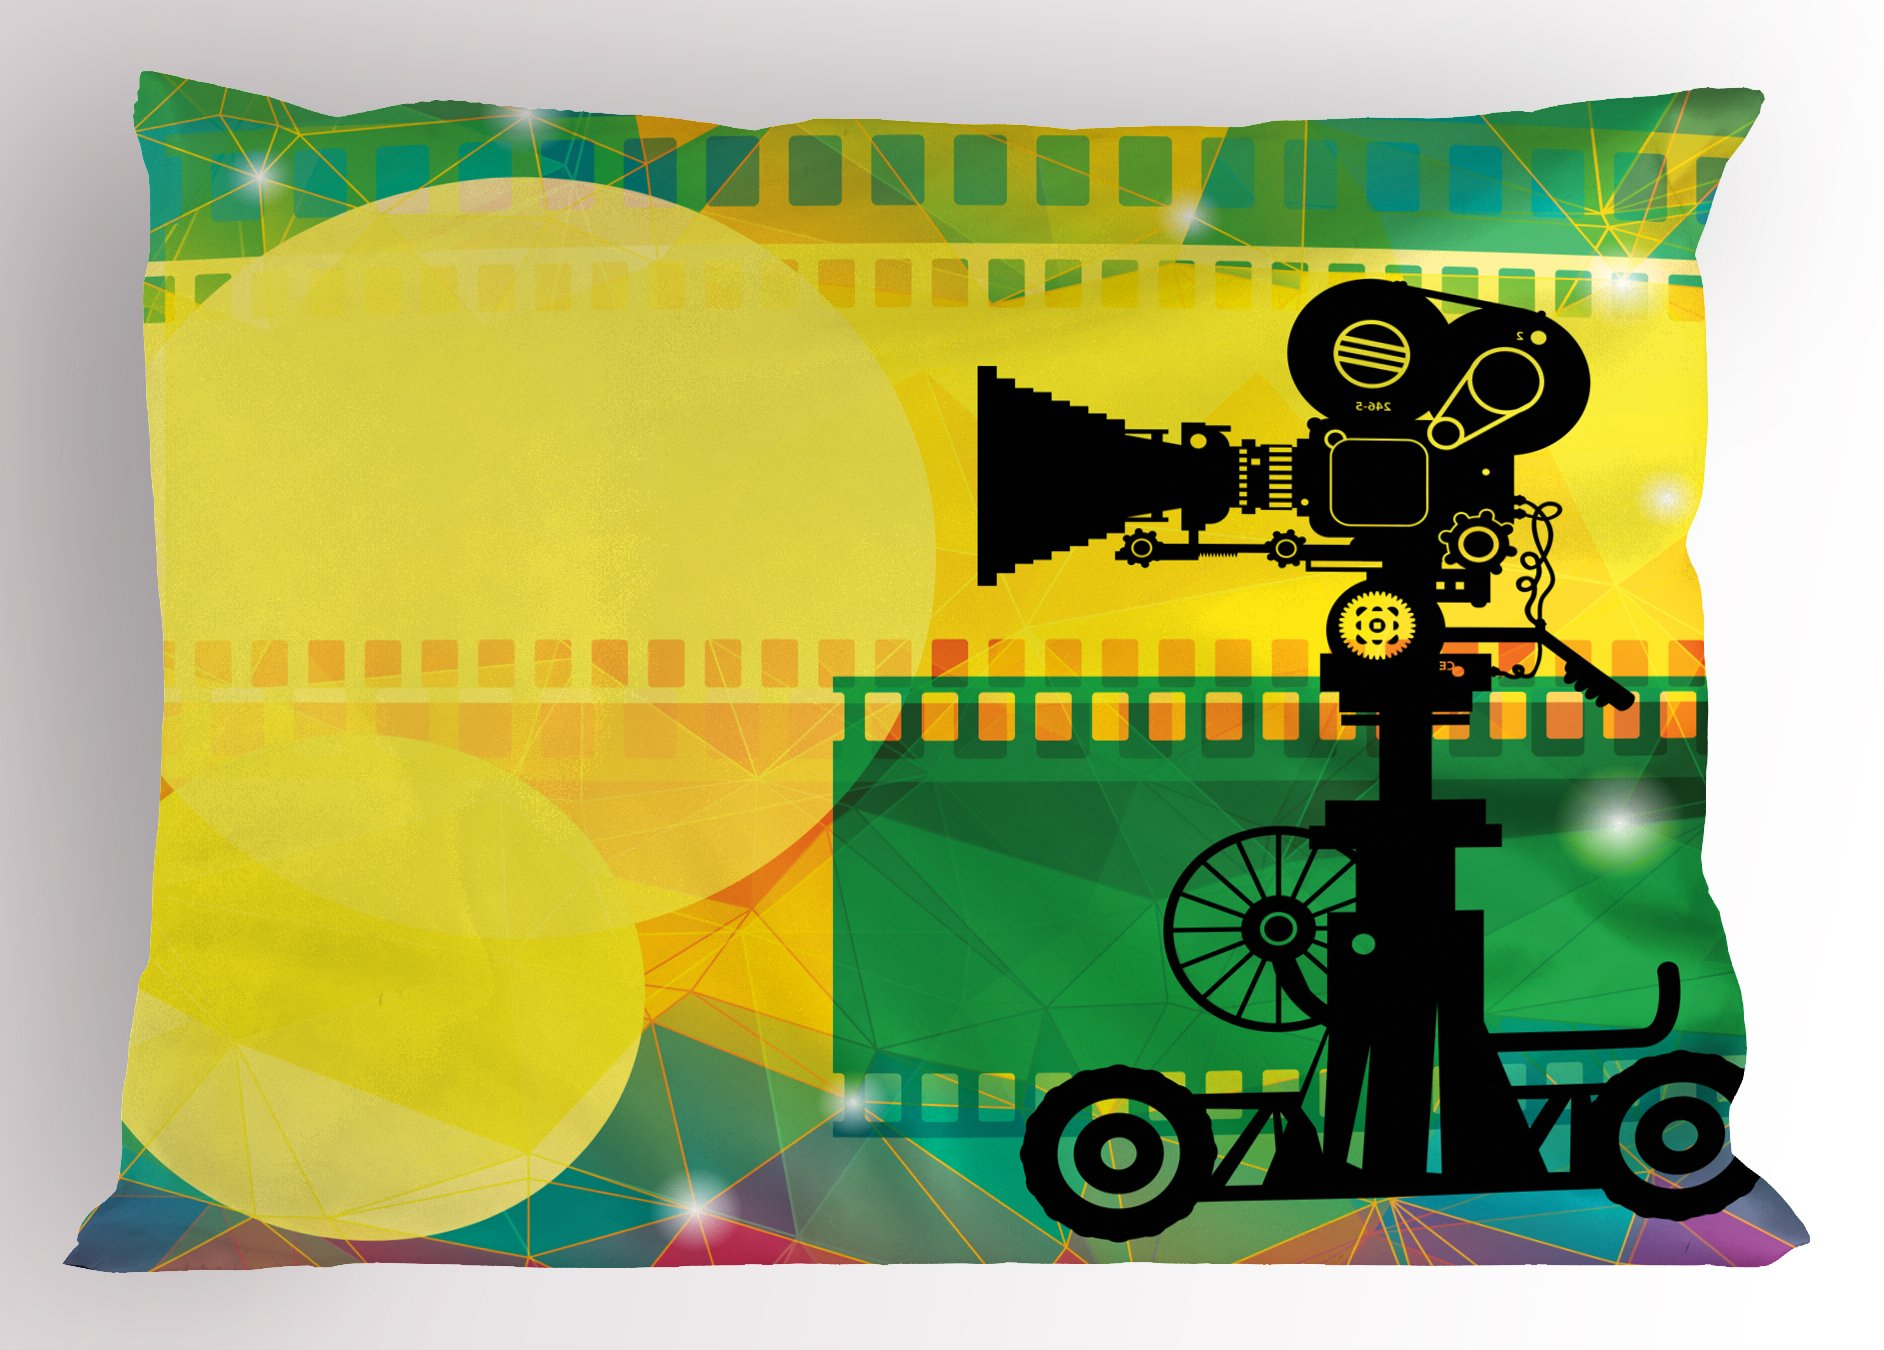 Ambesonne Movie Theater Pillow Sham, Abstract and Vibrant Colored Composition with Strips Projection Silhouette, Decorative Standard Size Printed Pillowcase, 26 X 20 inches, Multicolor